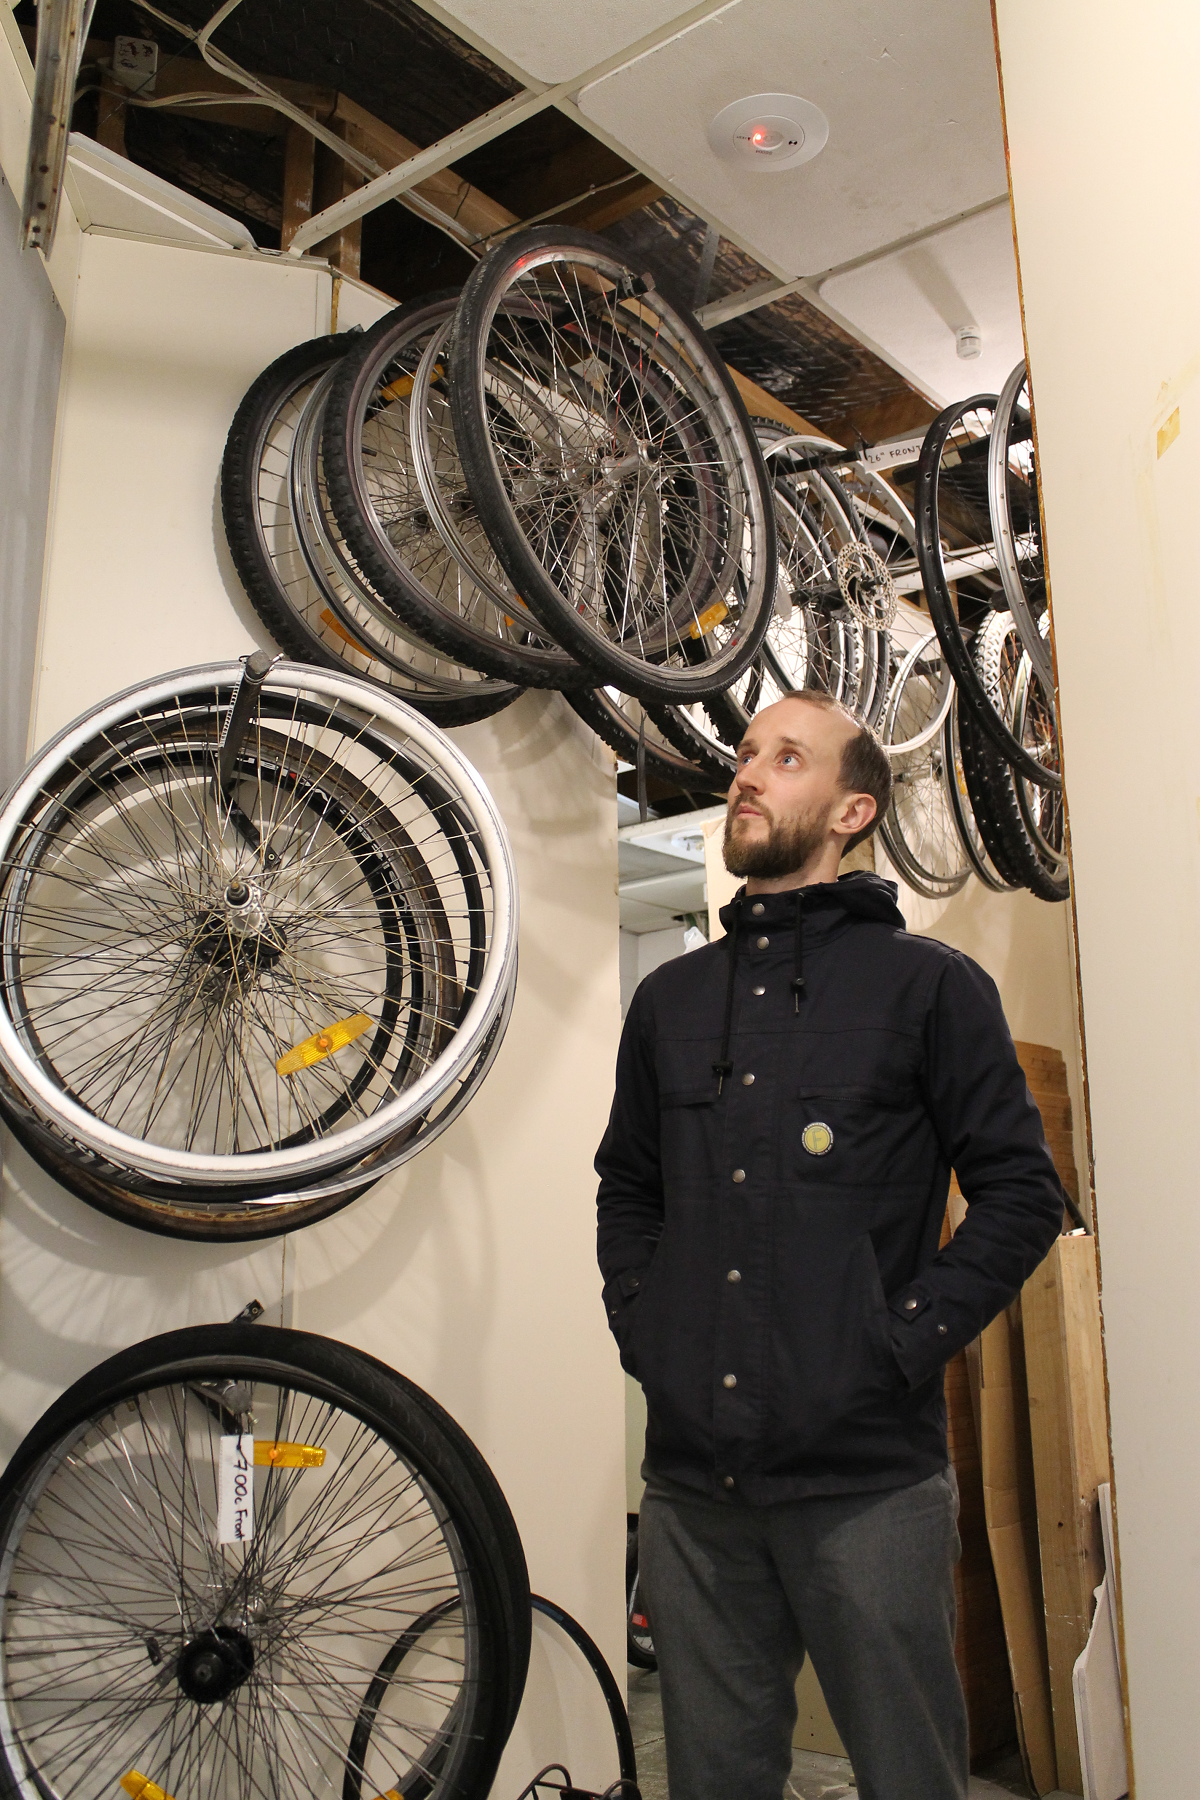 Mark Johnson, Mechanical Tempest, community bike workshop